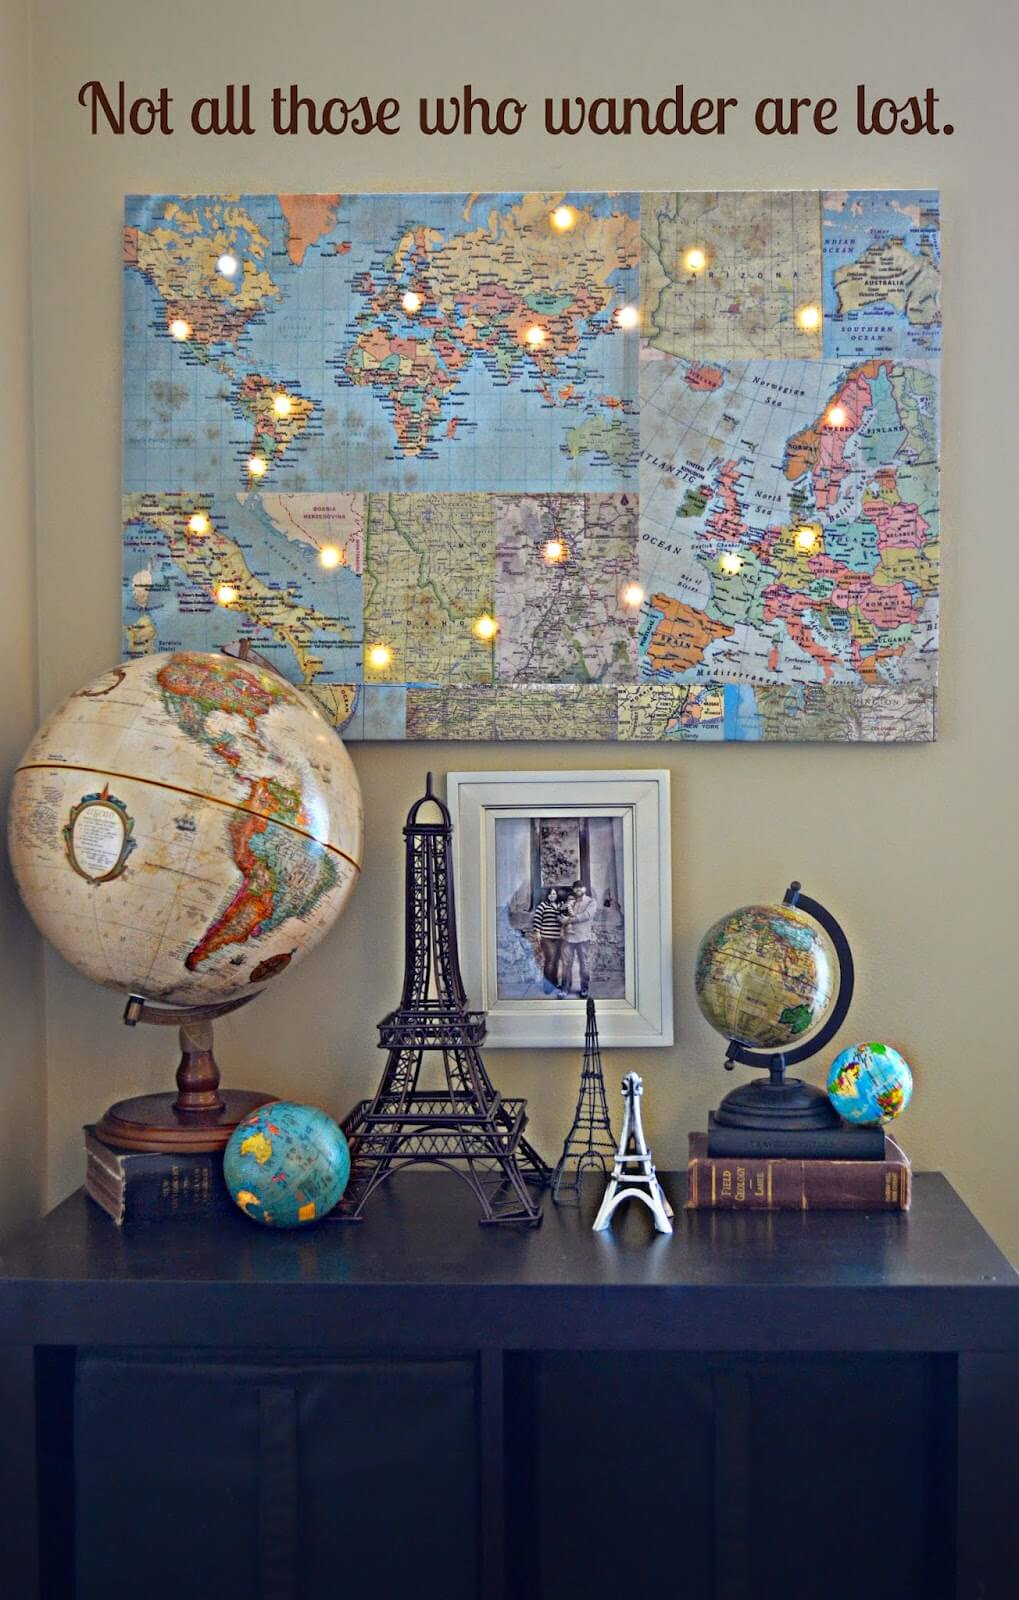 Best 29 Best Travel Inspired Home Decor Ideas And Designs For 2019 This Month